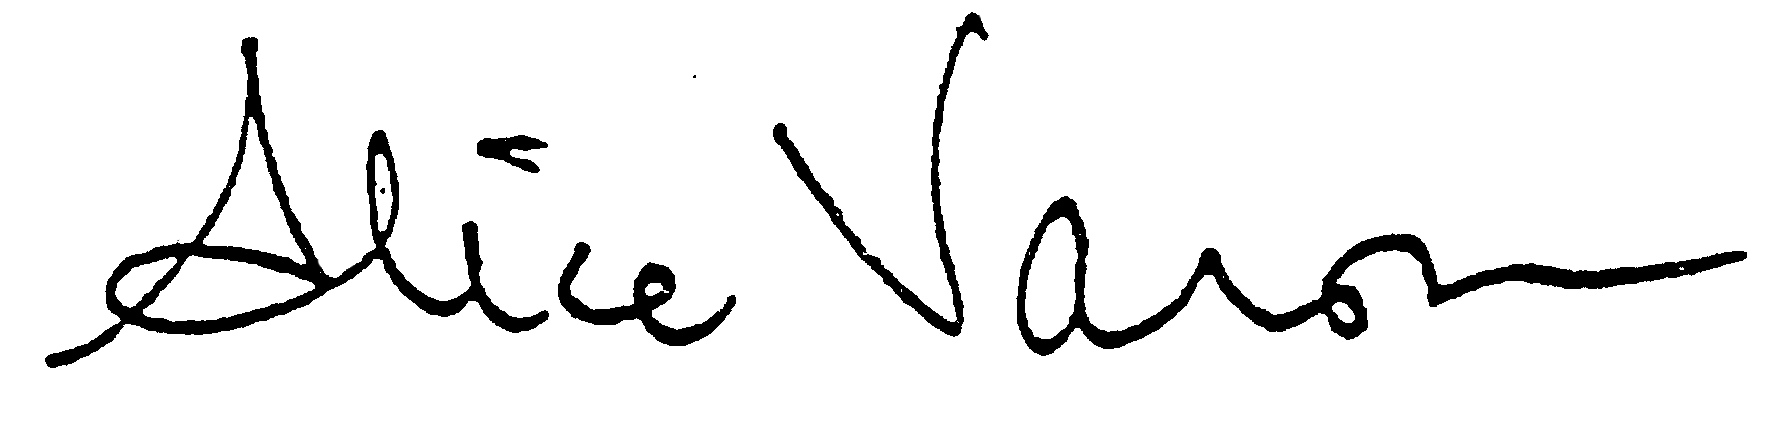 Alice_Signature_Black_Pen.png